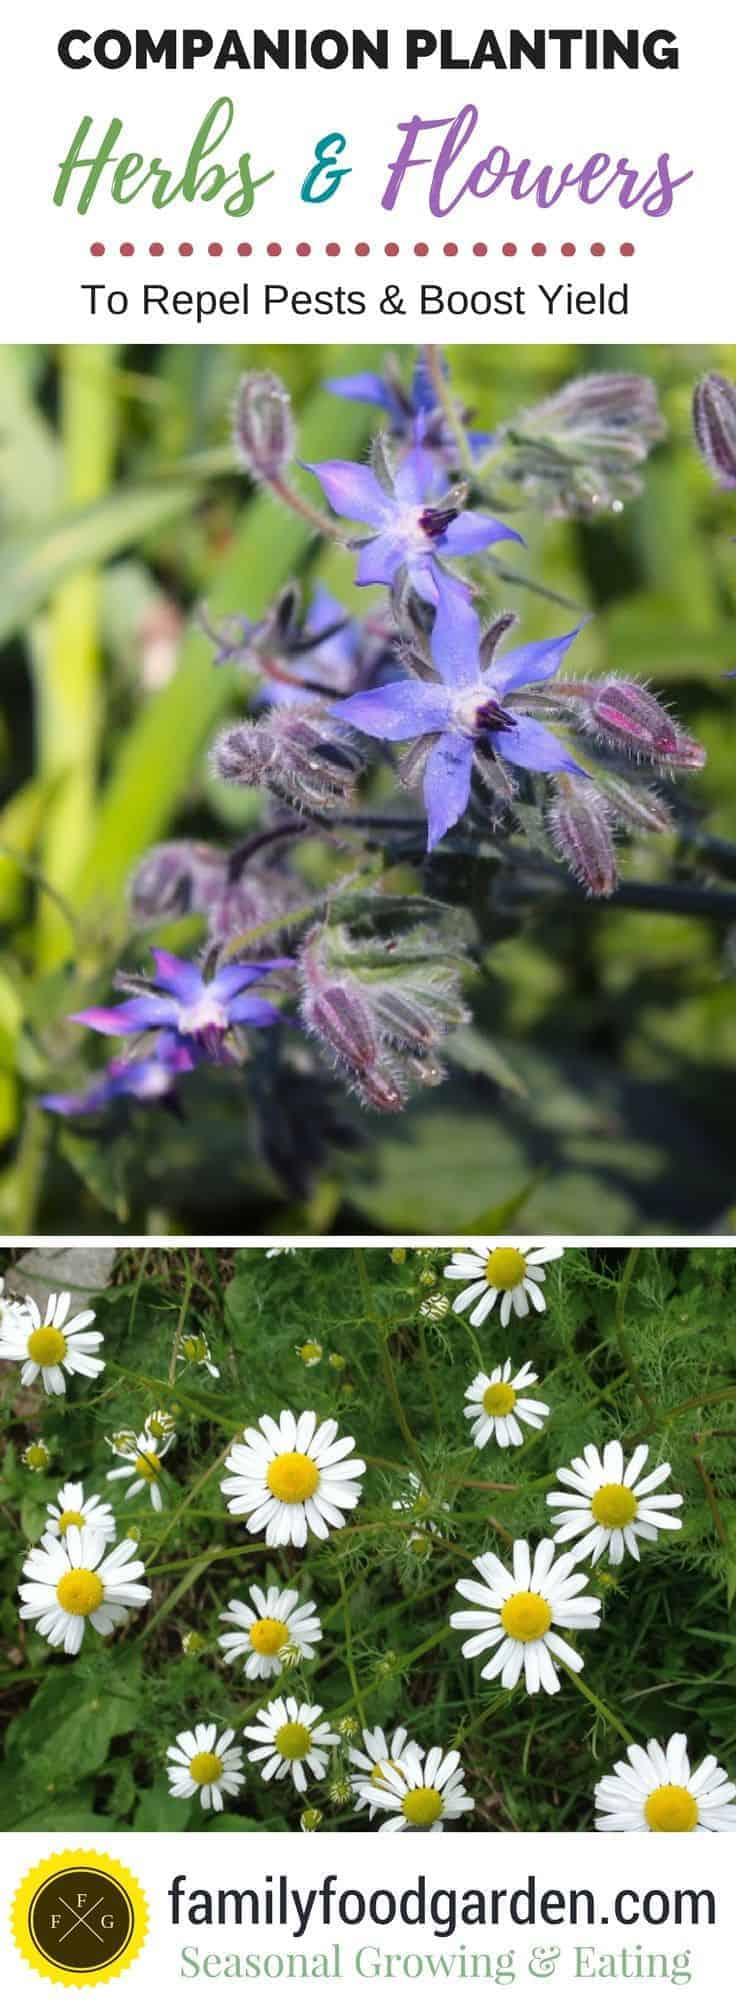 Companion Planting Herbs & Flowers Examples